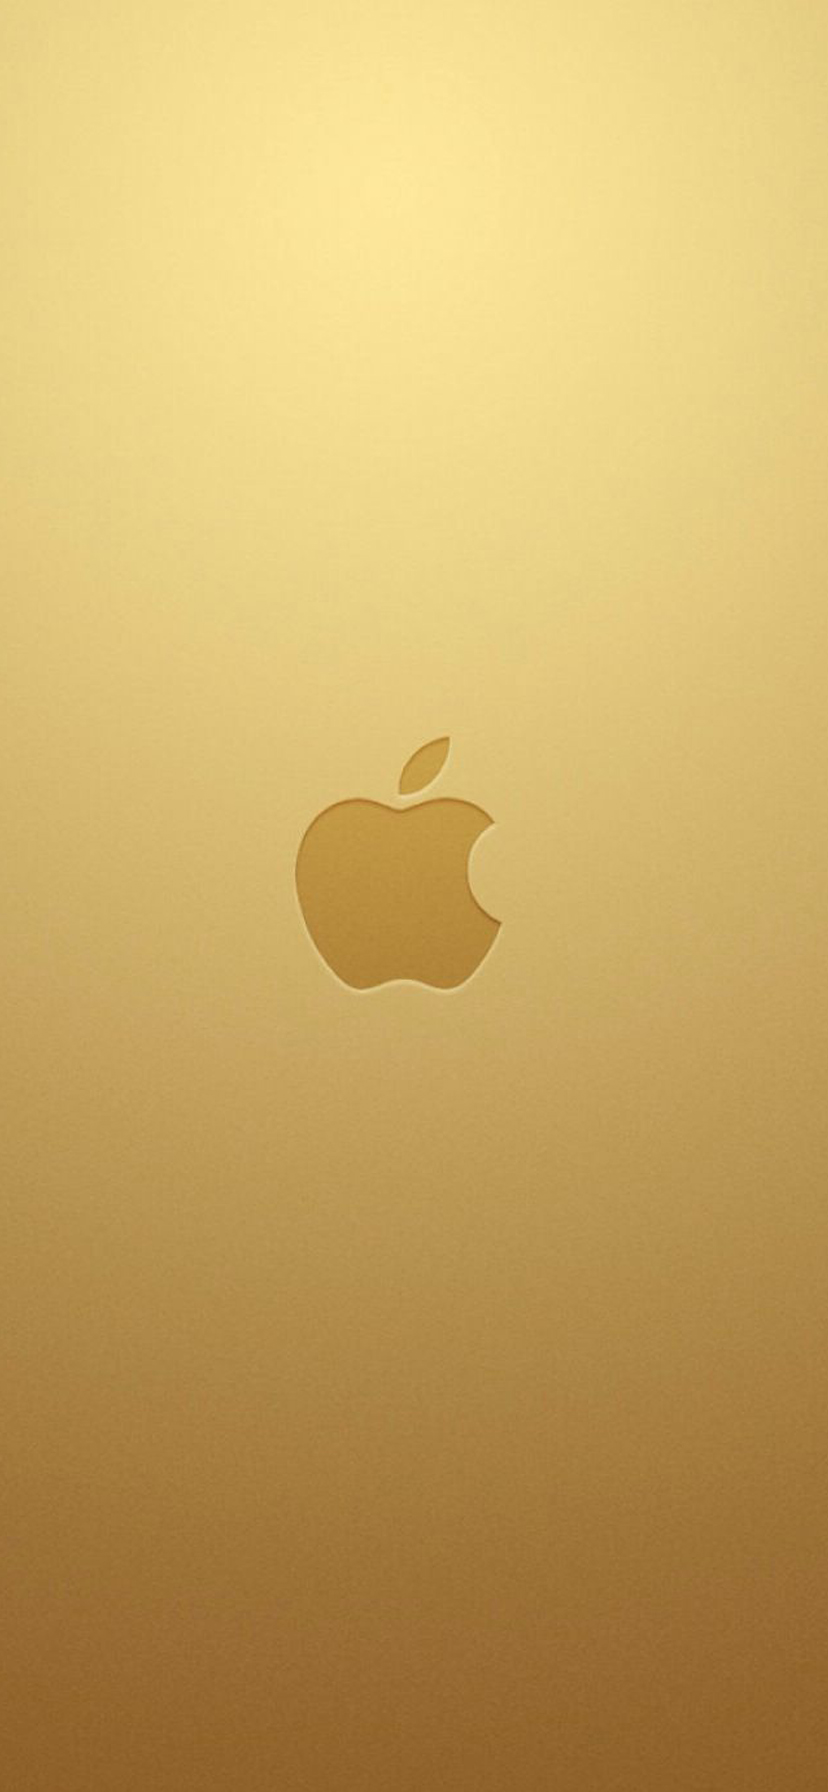 10 Alternative Wallpapers For Apple Iphone 11 05 Gold Background And 3d Logo Hd Wallpapers Wallpapers Download High Resolution Wallpapers